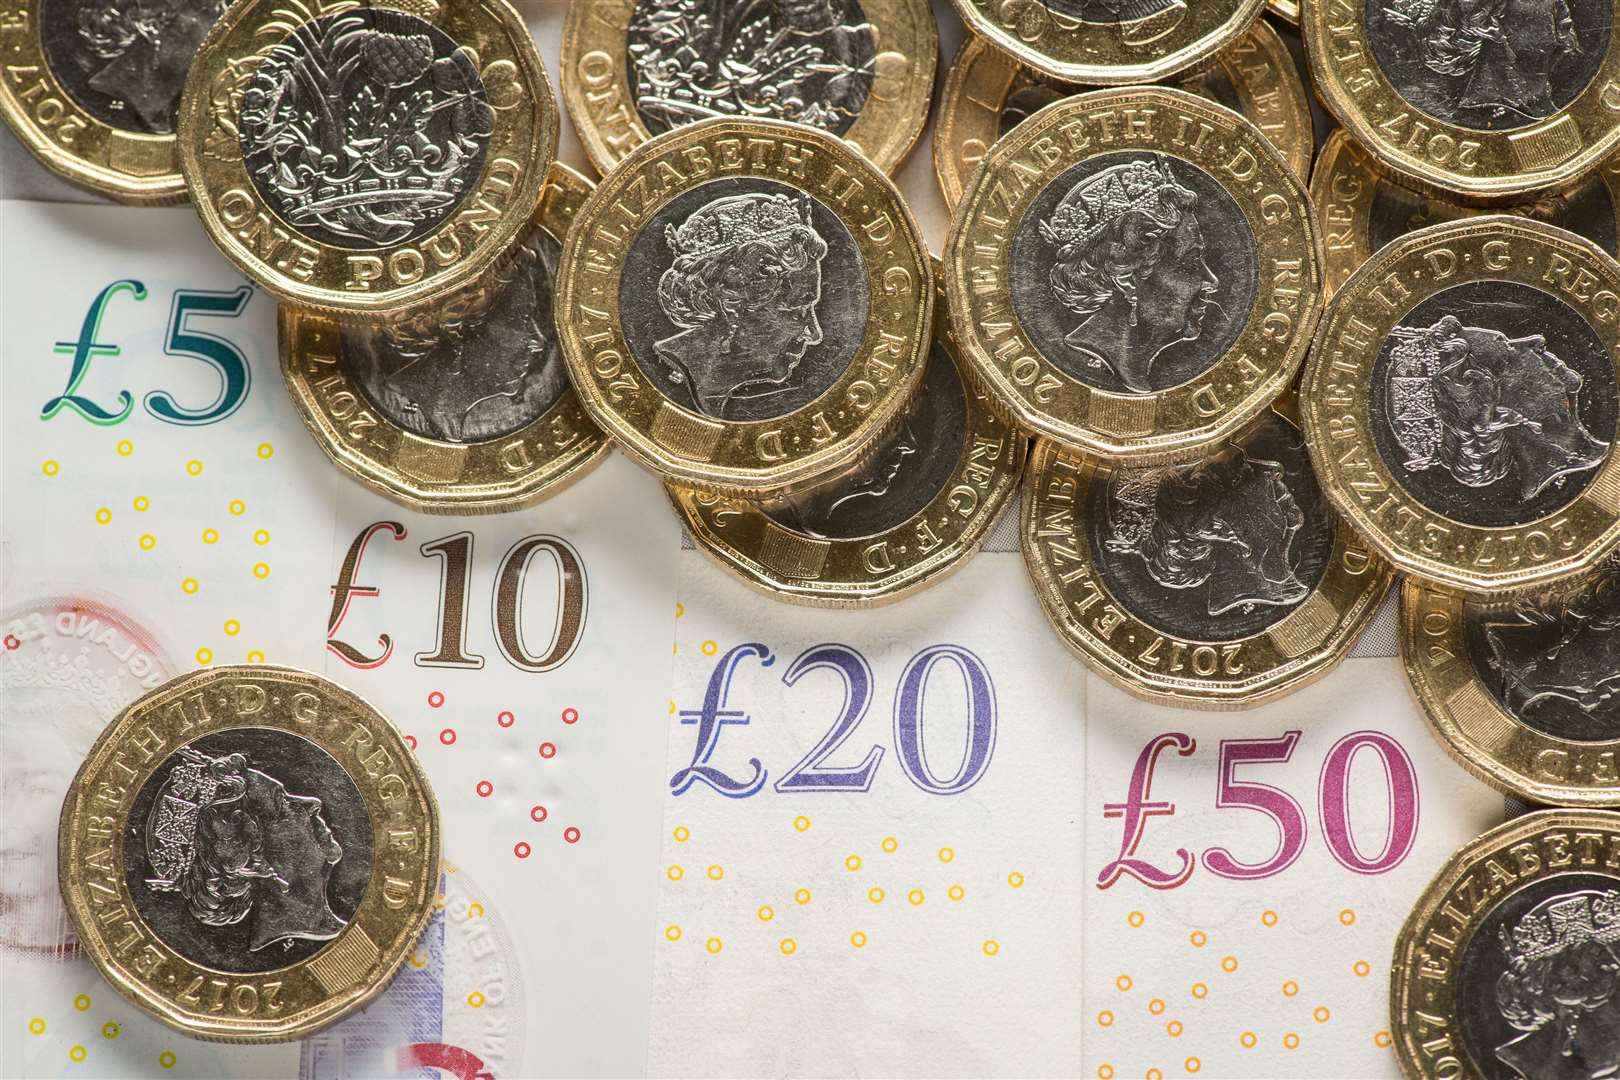 Labour says adults will struggle to make up the £20 cut